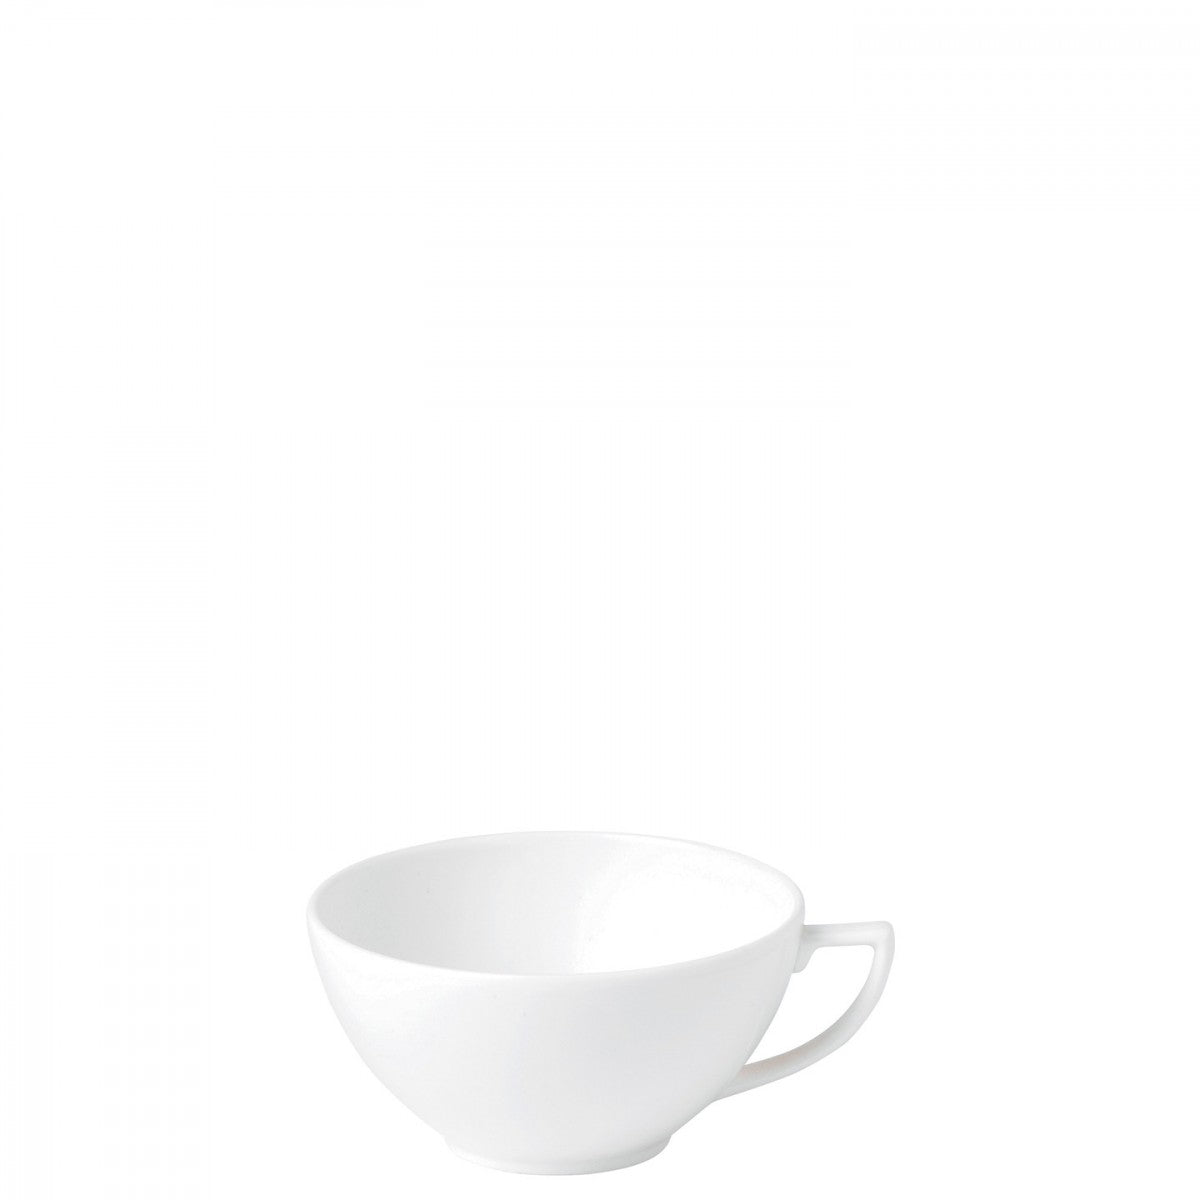 Jasper Conran White Teacup